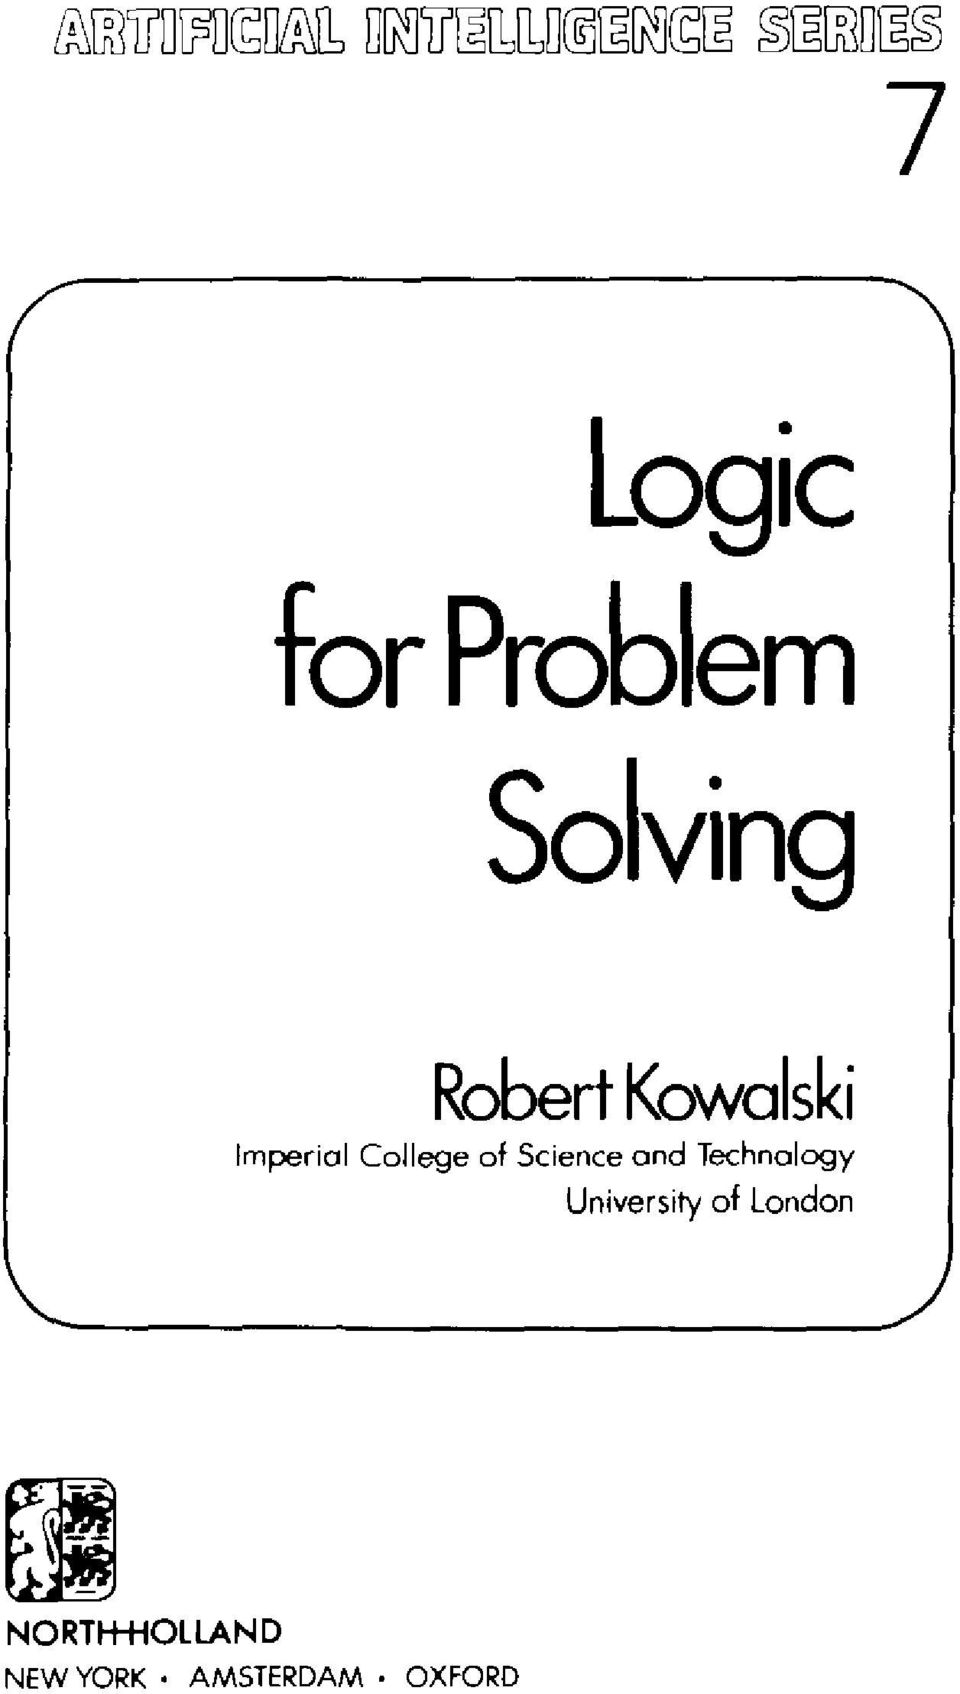 Problem Solving Robert Kowalski Imperial College